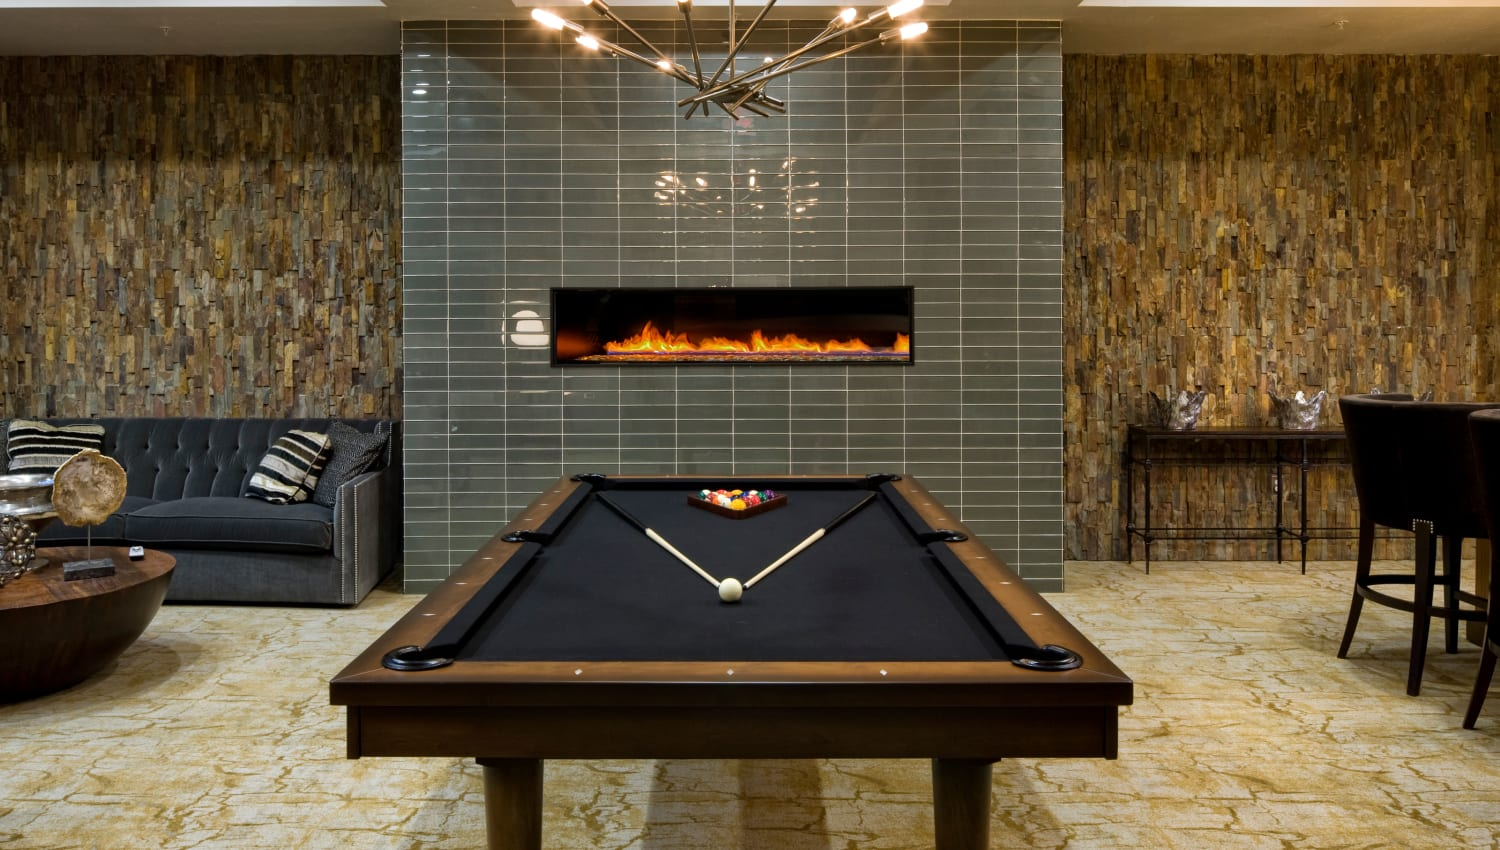 Pool table and fireplace at Olympus Alameda in Albuquerque, New Mexico